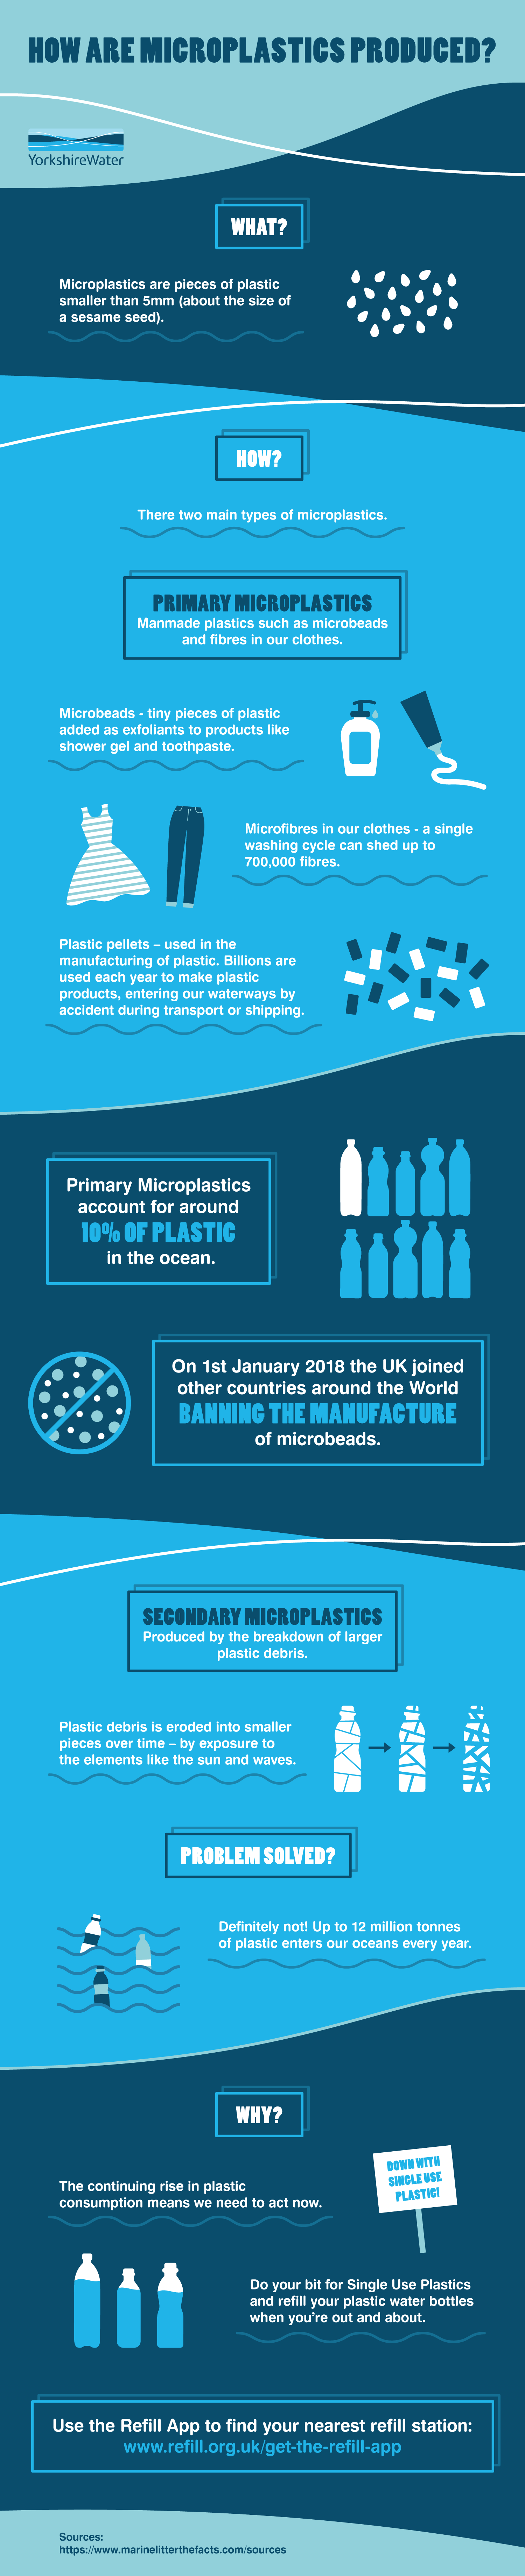 Microplastics-infographic.png